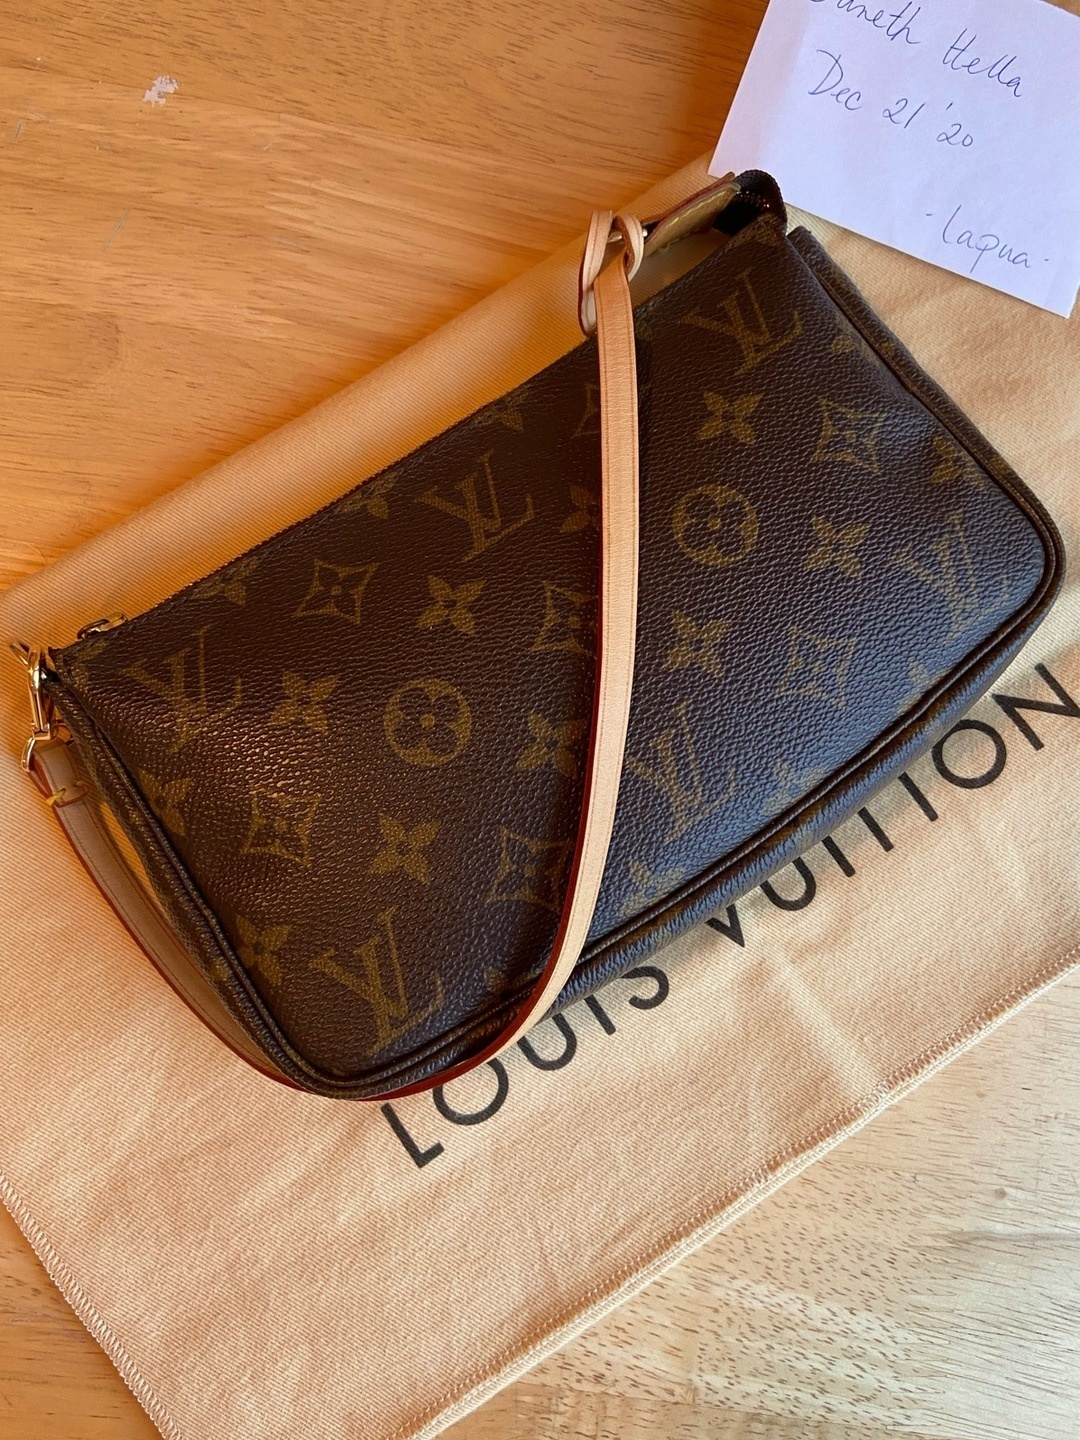 Damen taschen & geldbörsen - LOUIS VUITTON photo 1